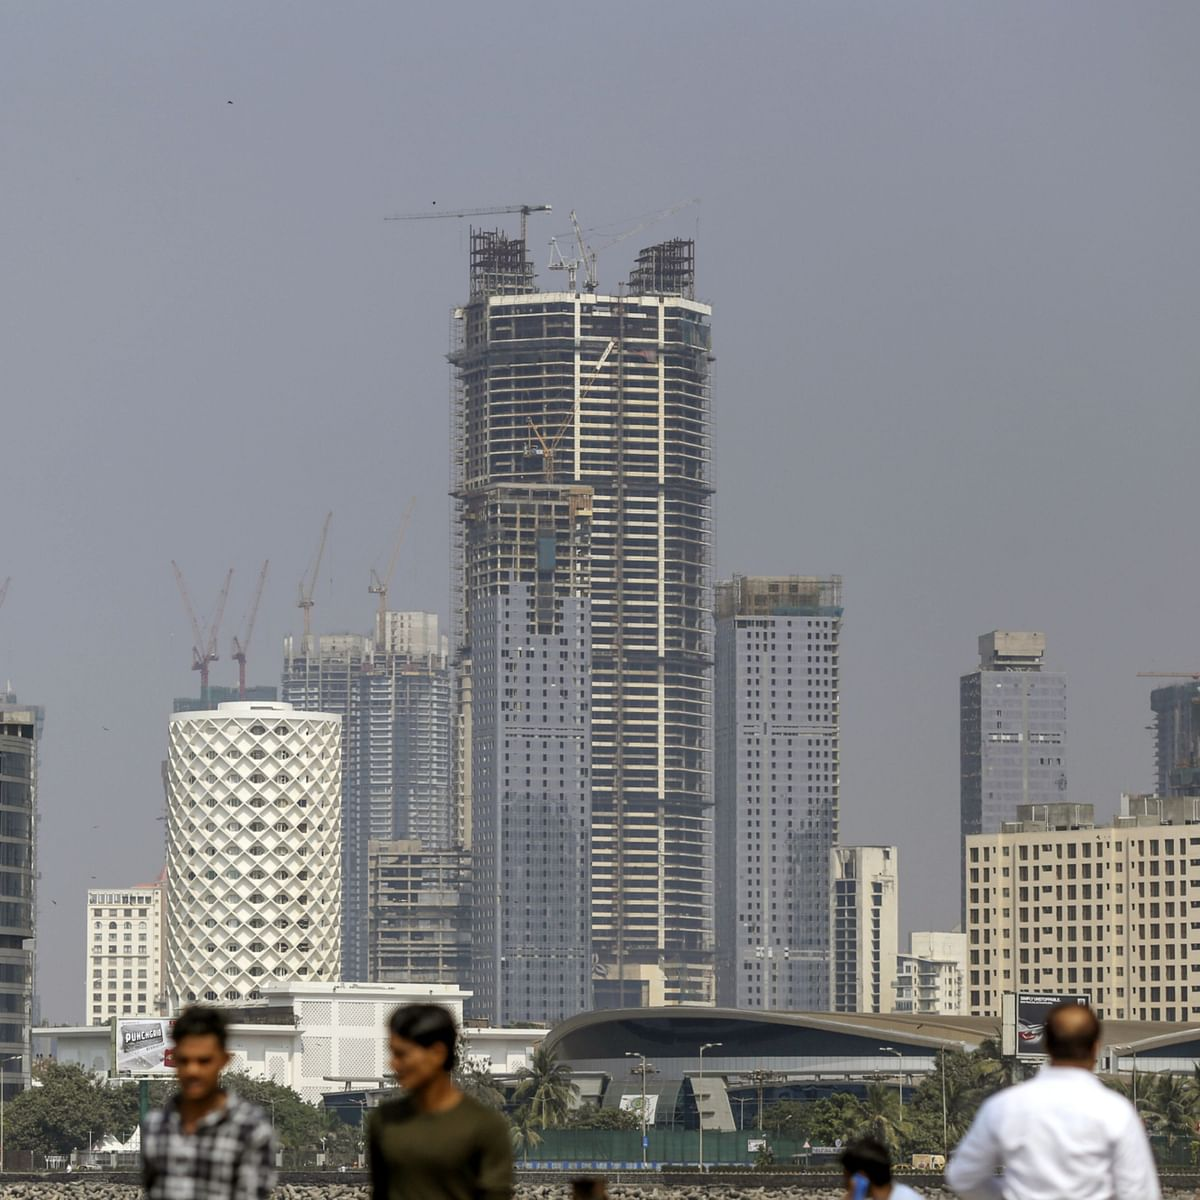 PE Investment In Real Estate Down 57% In Jan.-Sept. At $2.3 Billion